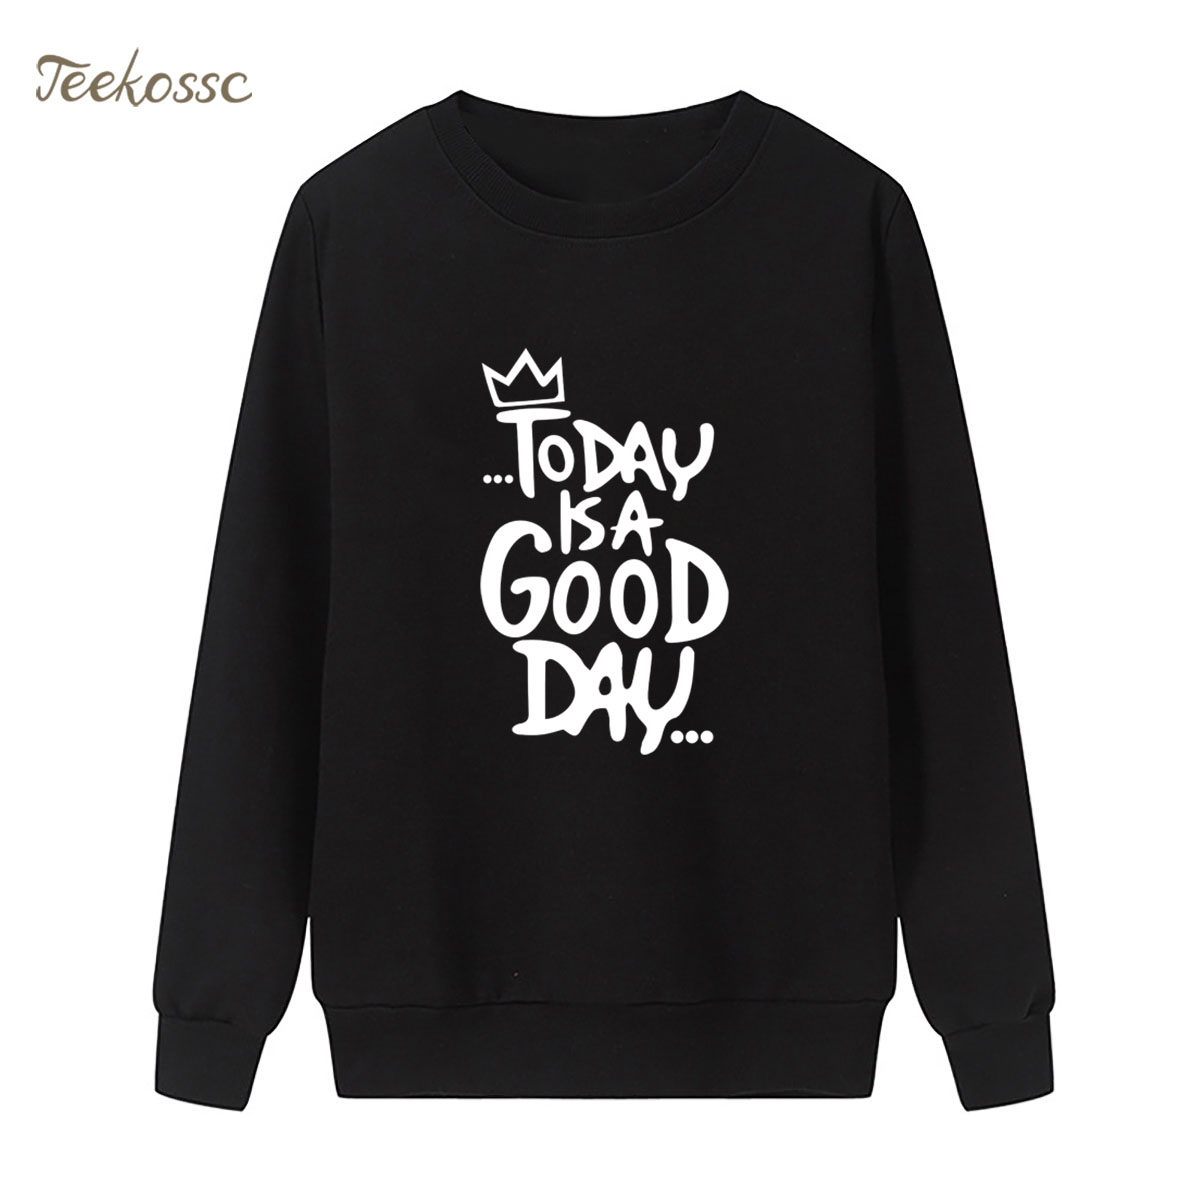 Today Is A Good Day Sweatshirt Print Hoodie 2018 New Fashion Winter Autumn Women Lasdies Pullover Loose Fleece Casual Streetwear